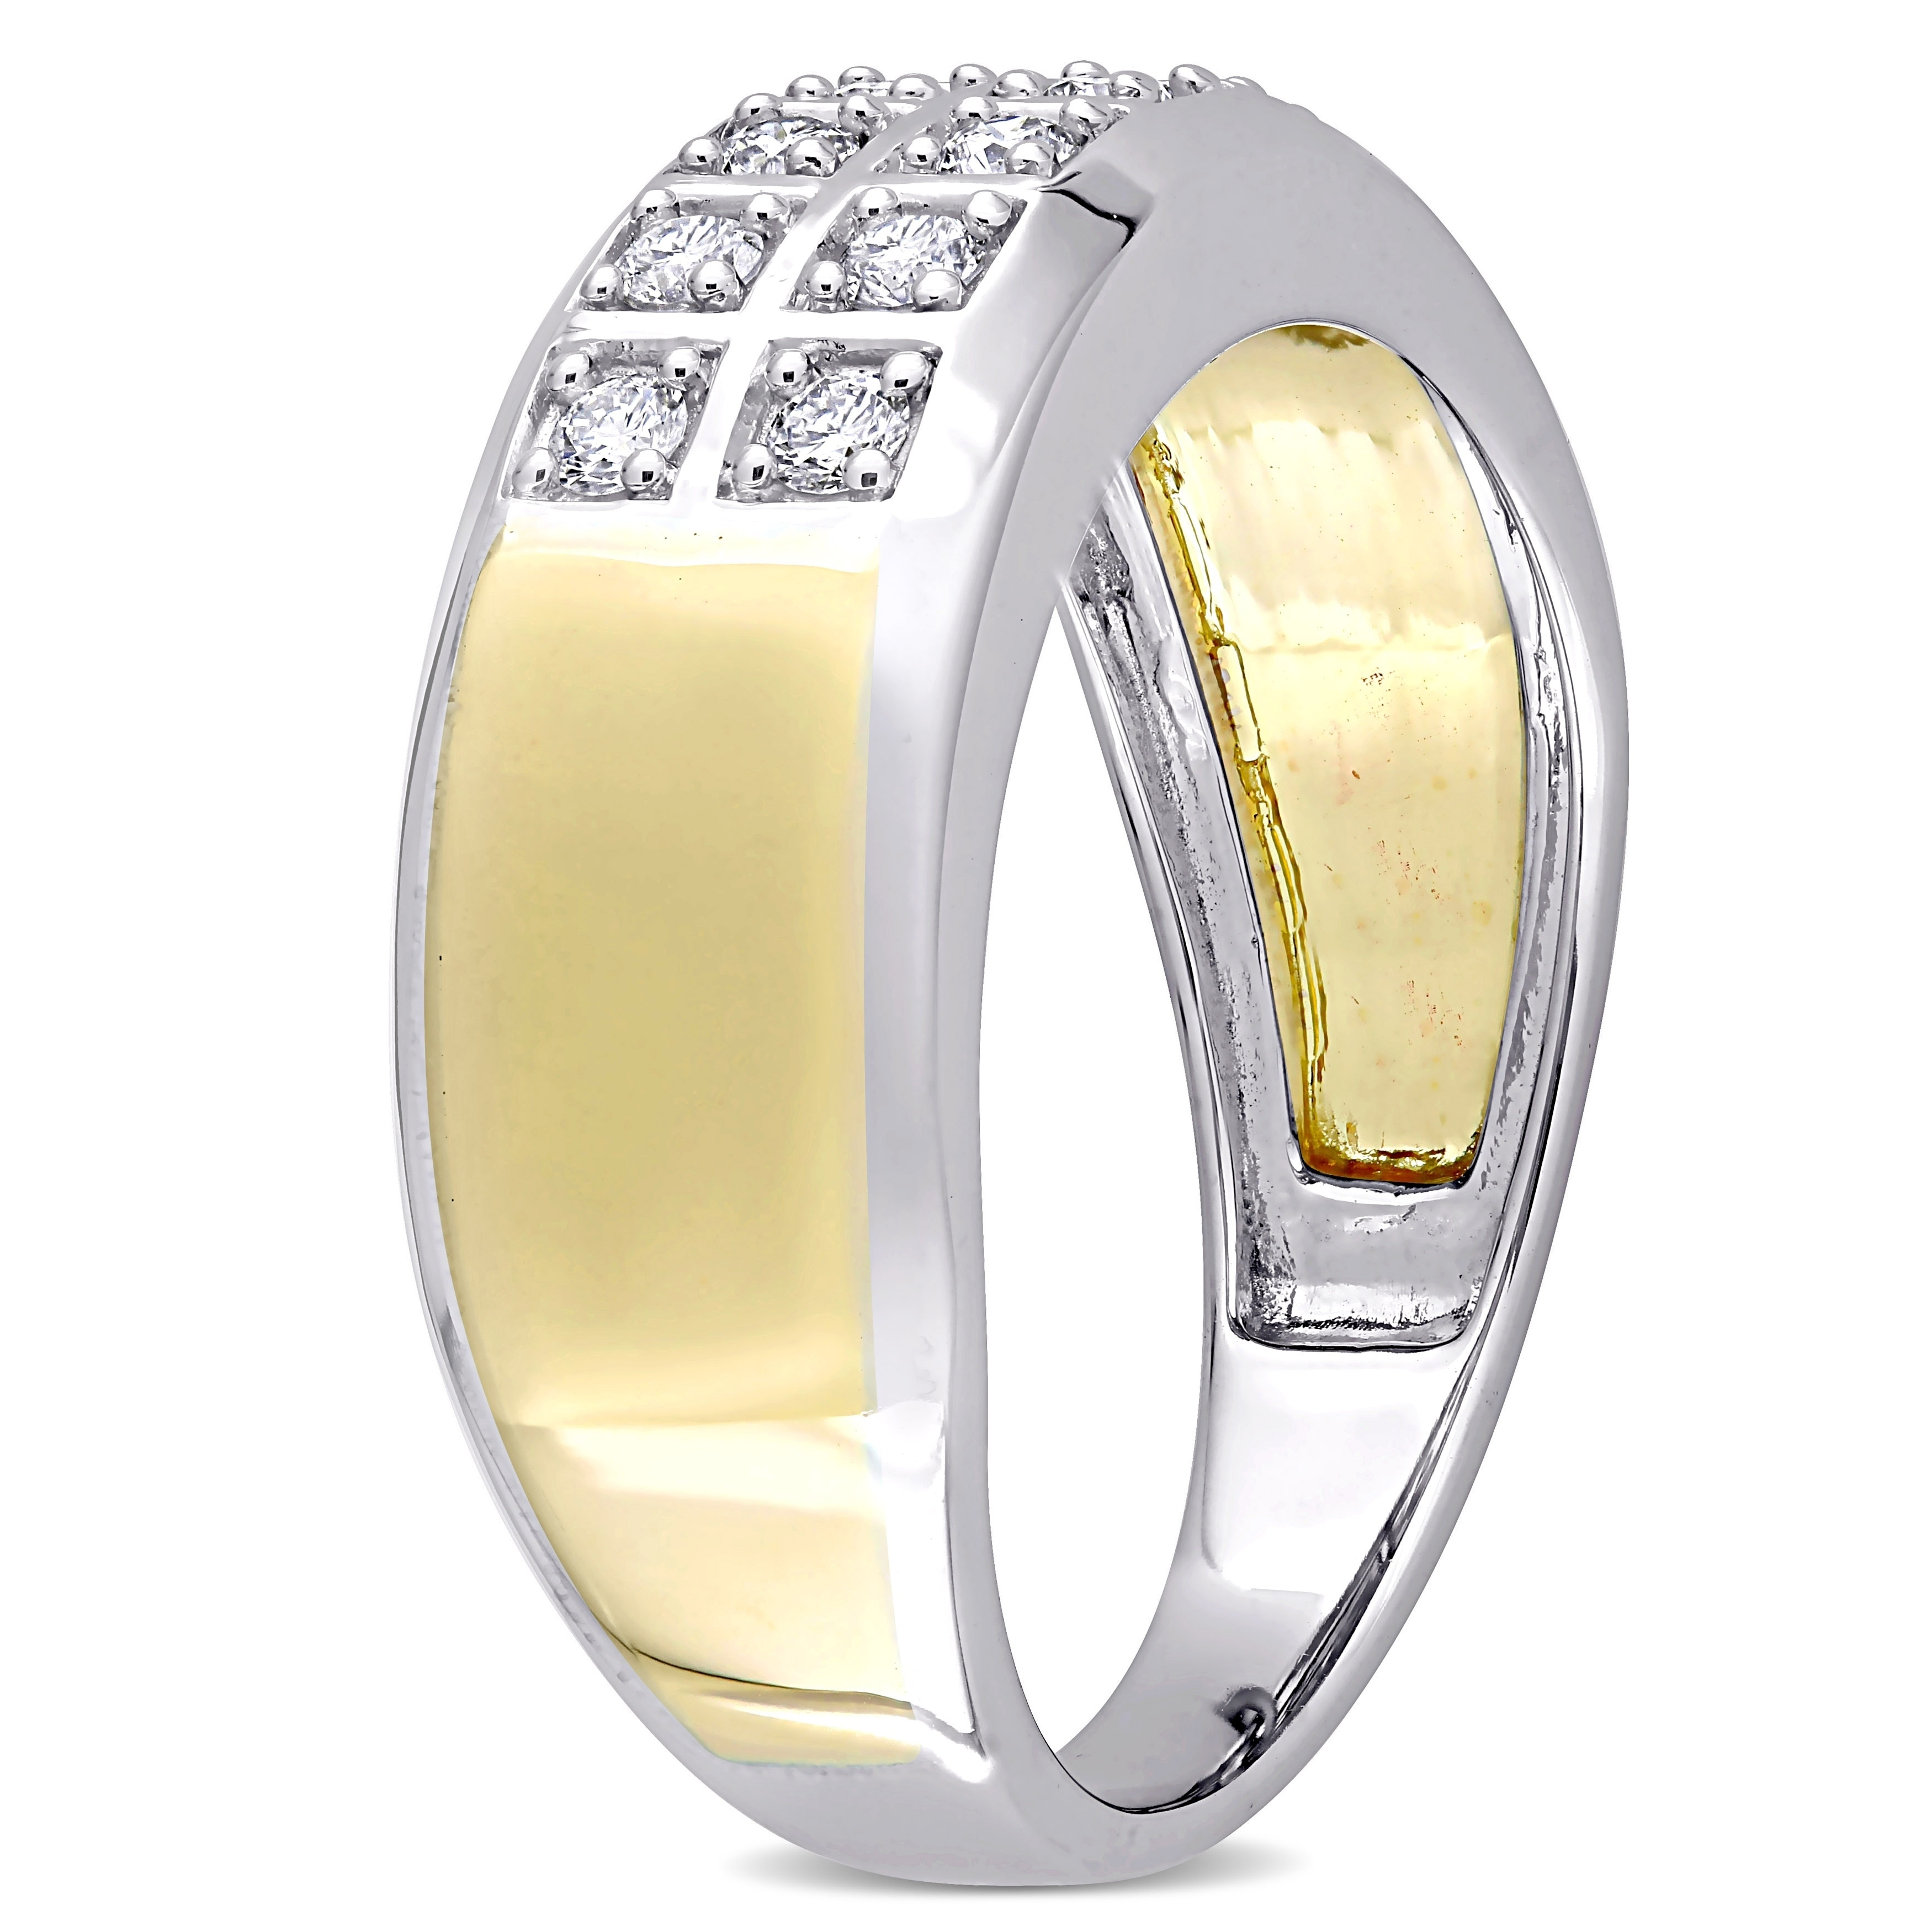 Size-5.25 1//6 cttw, G-H,I2-I3 Diamond Wedding Band in 10K Yellow Gold